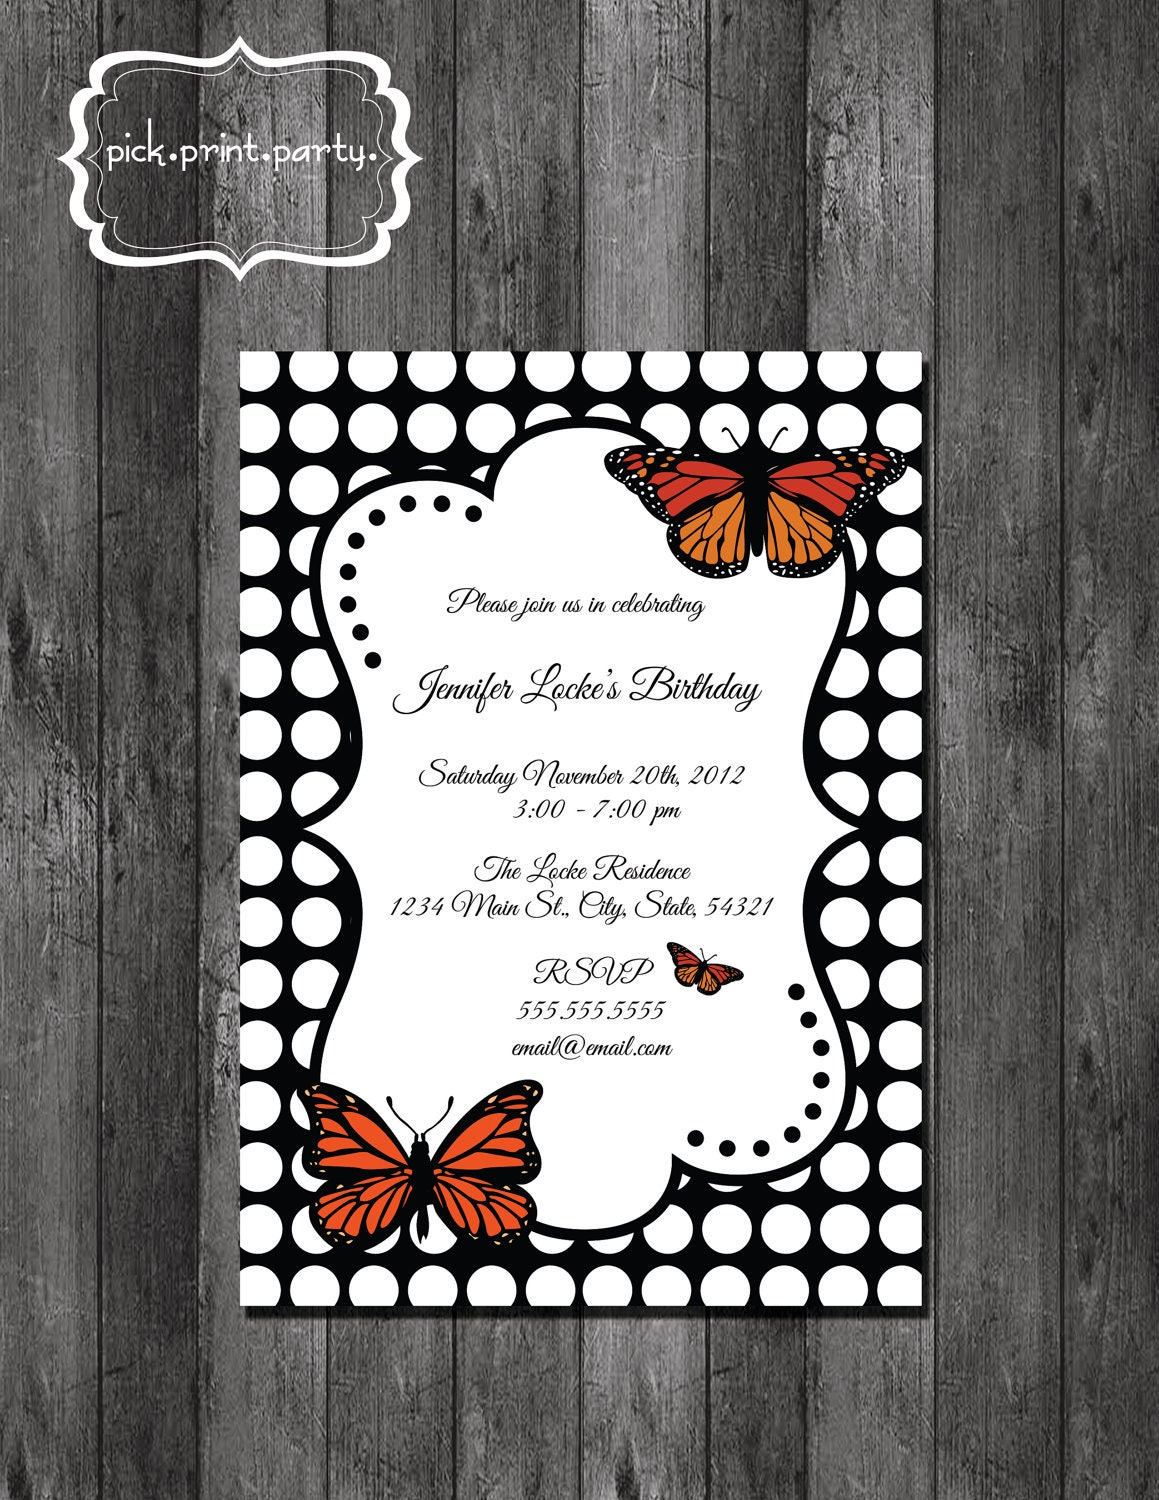 Birthday Party Invitation Butterfly - Polka Dot - DIY - Printable